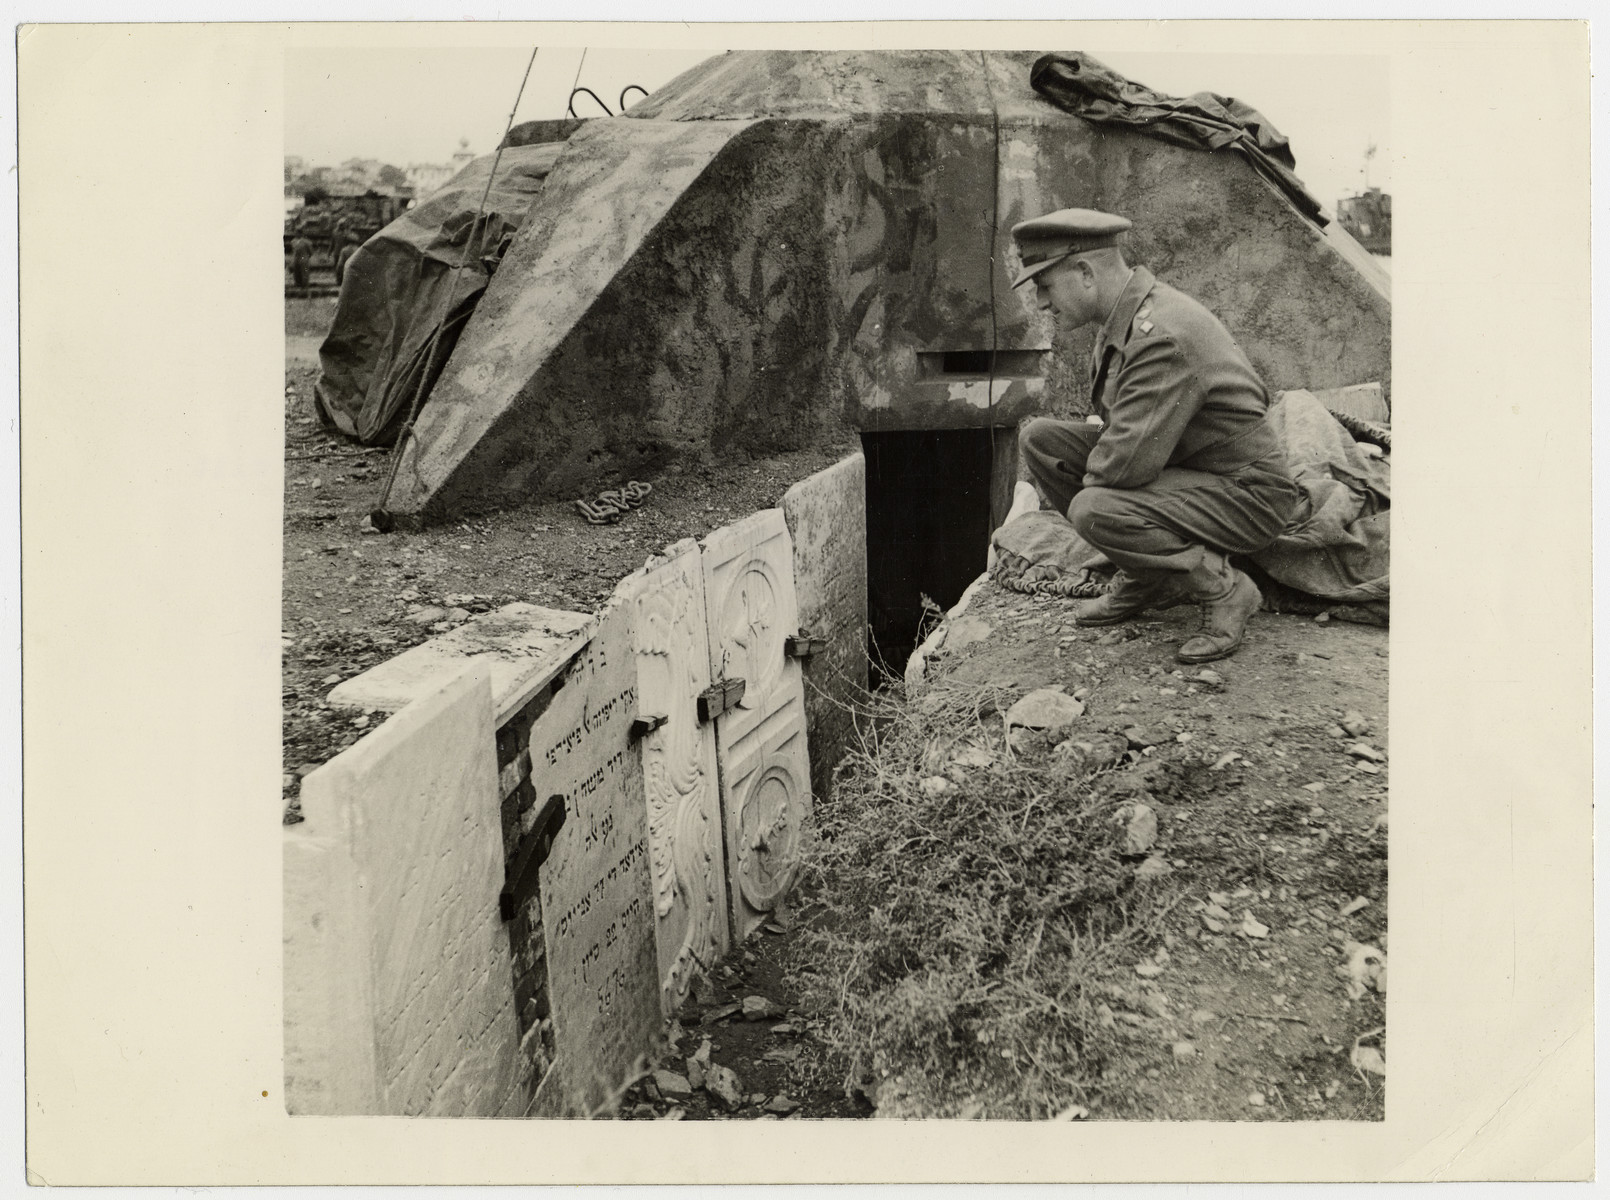 "Official British photograph showing a soldier staring at descrated Jewish tombstones in Salonika.   The official caption reads: ""Indian Units arrived by sea at Salonika on 11th Nov., 1944.  A German strongpoint, with slit trenches lined with tombstones from Jewish graves. In the background can be seen the concrete emplacement adjoining the slit trenches."""